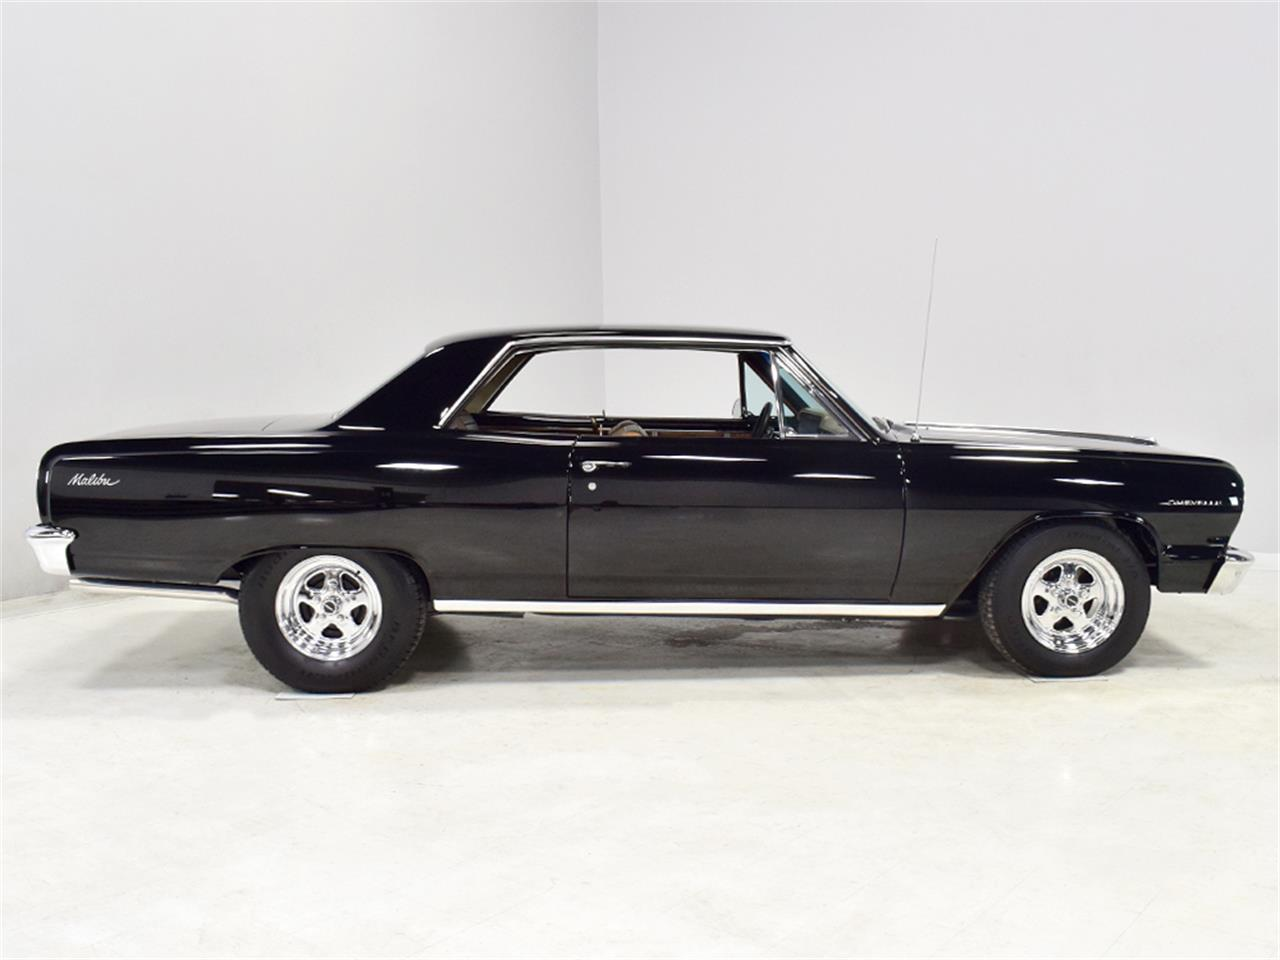 Large Picture of Classic 1964 Chevrolet Malibu Offered by Harwood Motors, LTD. - PK4B